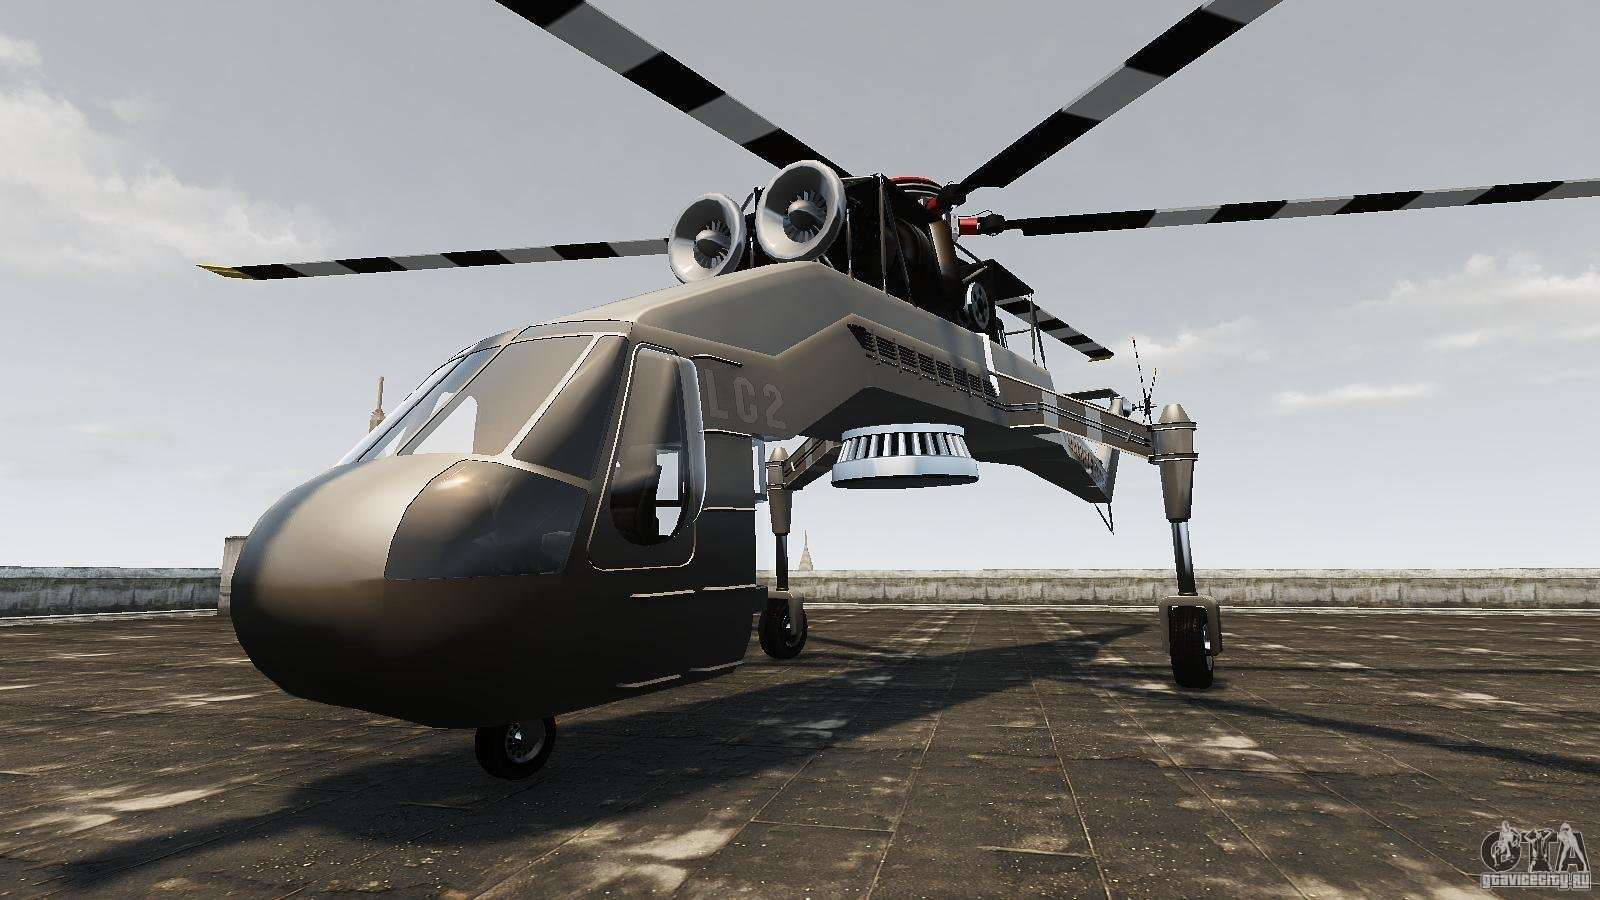 grand theft auto 5 helicopter cheat with 9055 Skylift Helicopter on Watch additionally Watch as well 3 likewise Rockstar Game Tips Customizable Controls In Vice City 10th Anniv besides Gta 5 Police Need Tweaking.